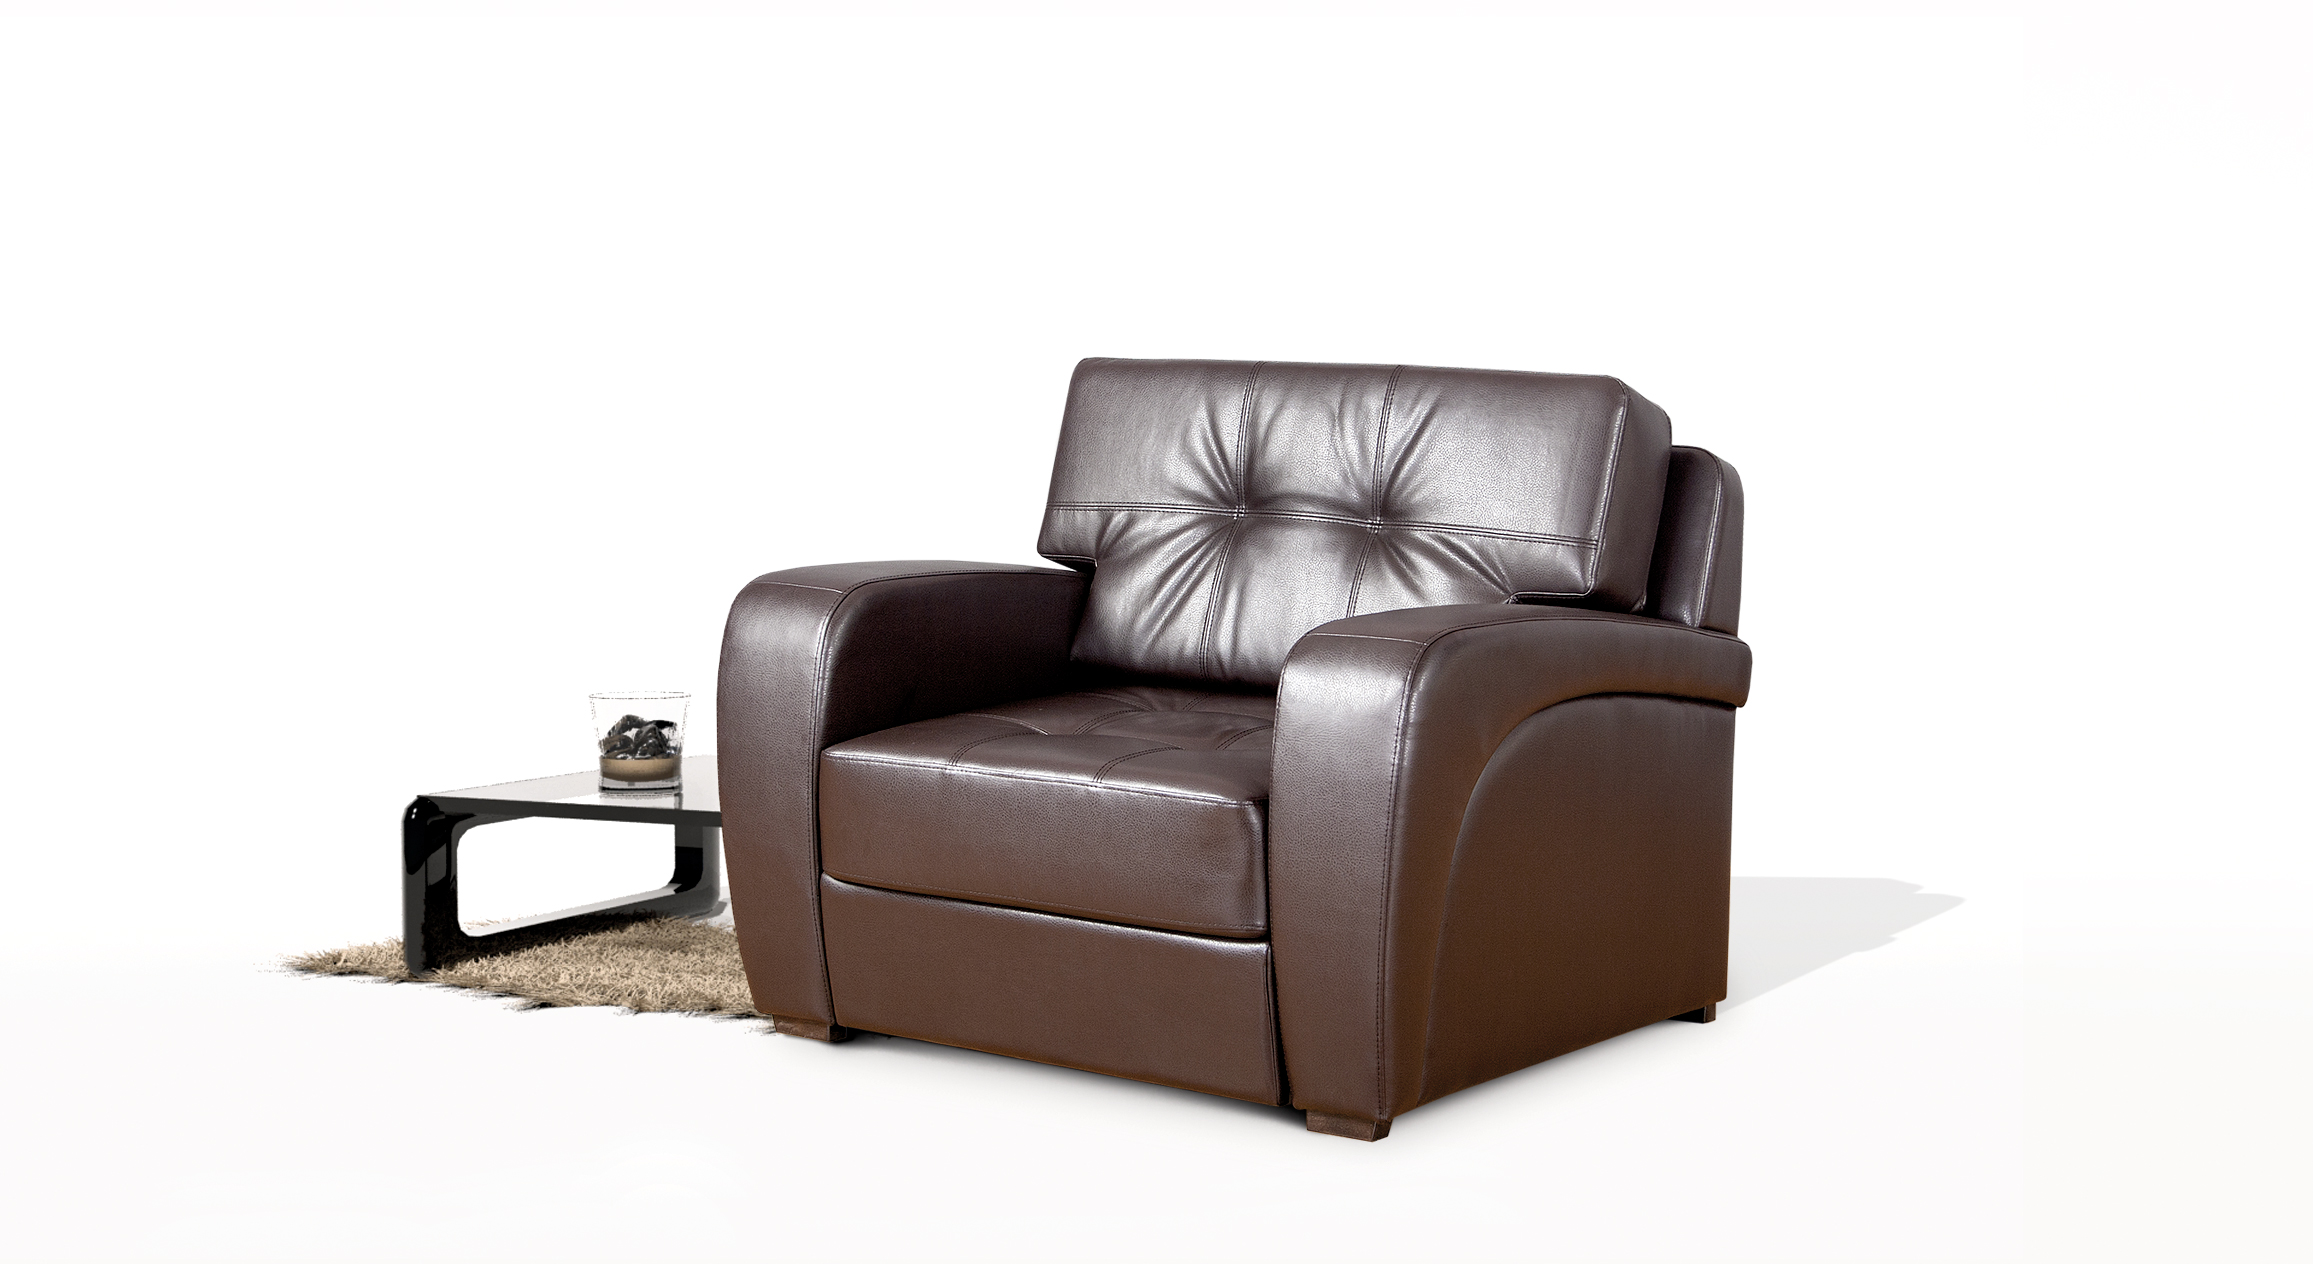 Extendable armchair quot president quot standard sofas by rudi an